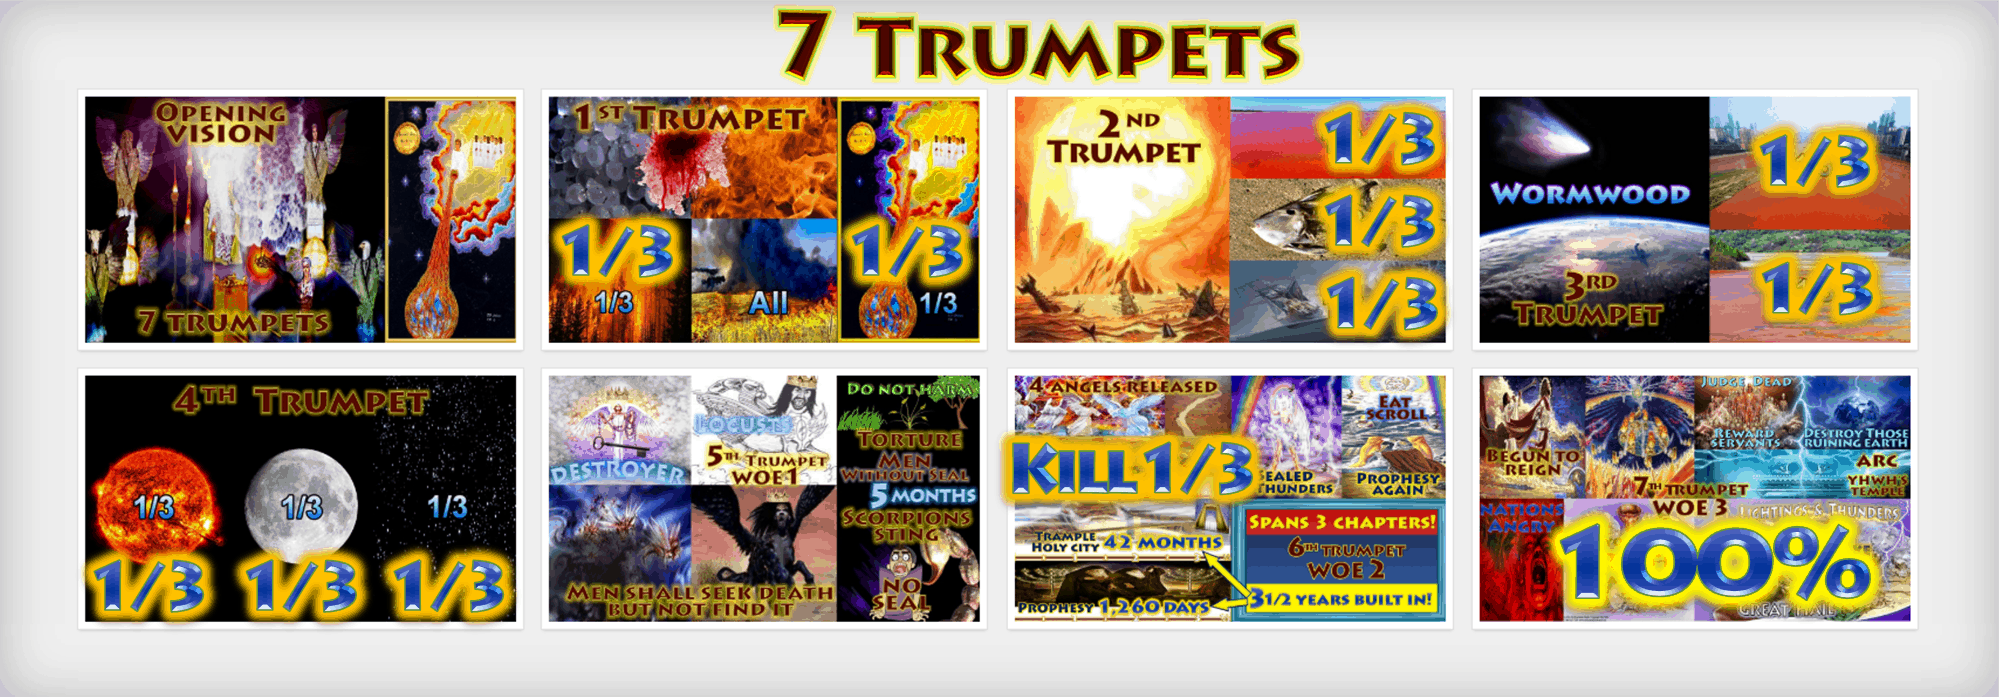 Third Destruction,1/3,1/3rd,Third Earth Burnt,Third trees burnt,third sea blood,third sea creatures died,third boats,wrecked,destroyed,third rivers,third springs,wormwood,third sun,third,moon,third,stars,Kill third,Measurement of destruction,Book of Revelation,Seven Trumpets,First Trumpet,Second Trumpet,Third Trumpet,Fourth Trumpet,Fifth Trumpet,Sixth Trumpet,Seventh Trumpet,Book of Revelation,Picture Gallery,Album,Chapter 8,Chapter 9,Chapter 10,Chapter 11,Seven Vials of Wrath,7 Vials,7 Bowls,Seven Bowls,wrath,Picture Gallery,Book of Revelation,First Vial,Second Vial,Third Vial,Fourth Vial,Fifth Vial,Sixth Vial,Seventh Vial,Chapter 15,Chapter 16,Chapter 19,Armageddon,7 Bowls of Wrath,First Bowl,Second Bowl,Third Bowl,Fourth Bowl,Fifth Bowl,Sixth Bowl,Seventh Bowl,Earth,sea,rivers,springs,sun,throne of Beast,Euphrates,Armageddon,air,Babylon,cities of nations,islands,mountains,Great City,Jerusalem,Hail,Blood,Complete destruction,annihilation,judgment,one hundred percent